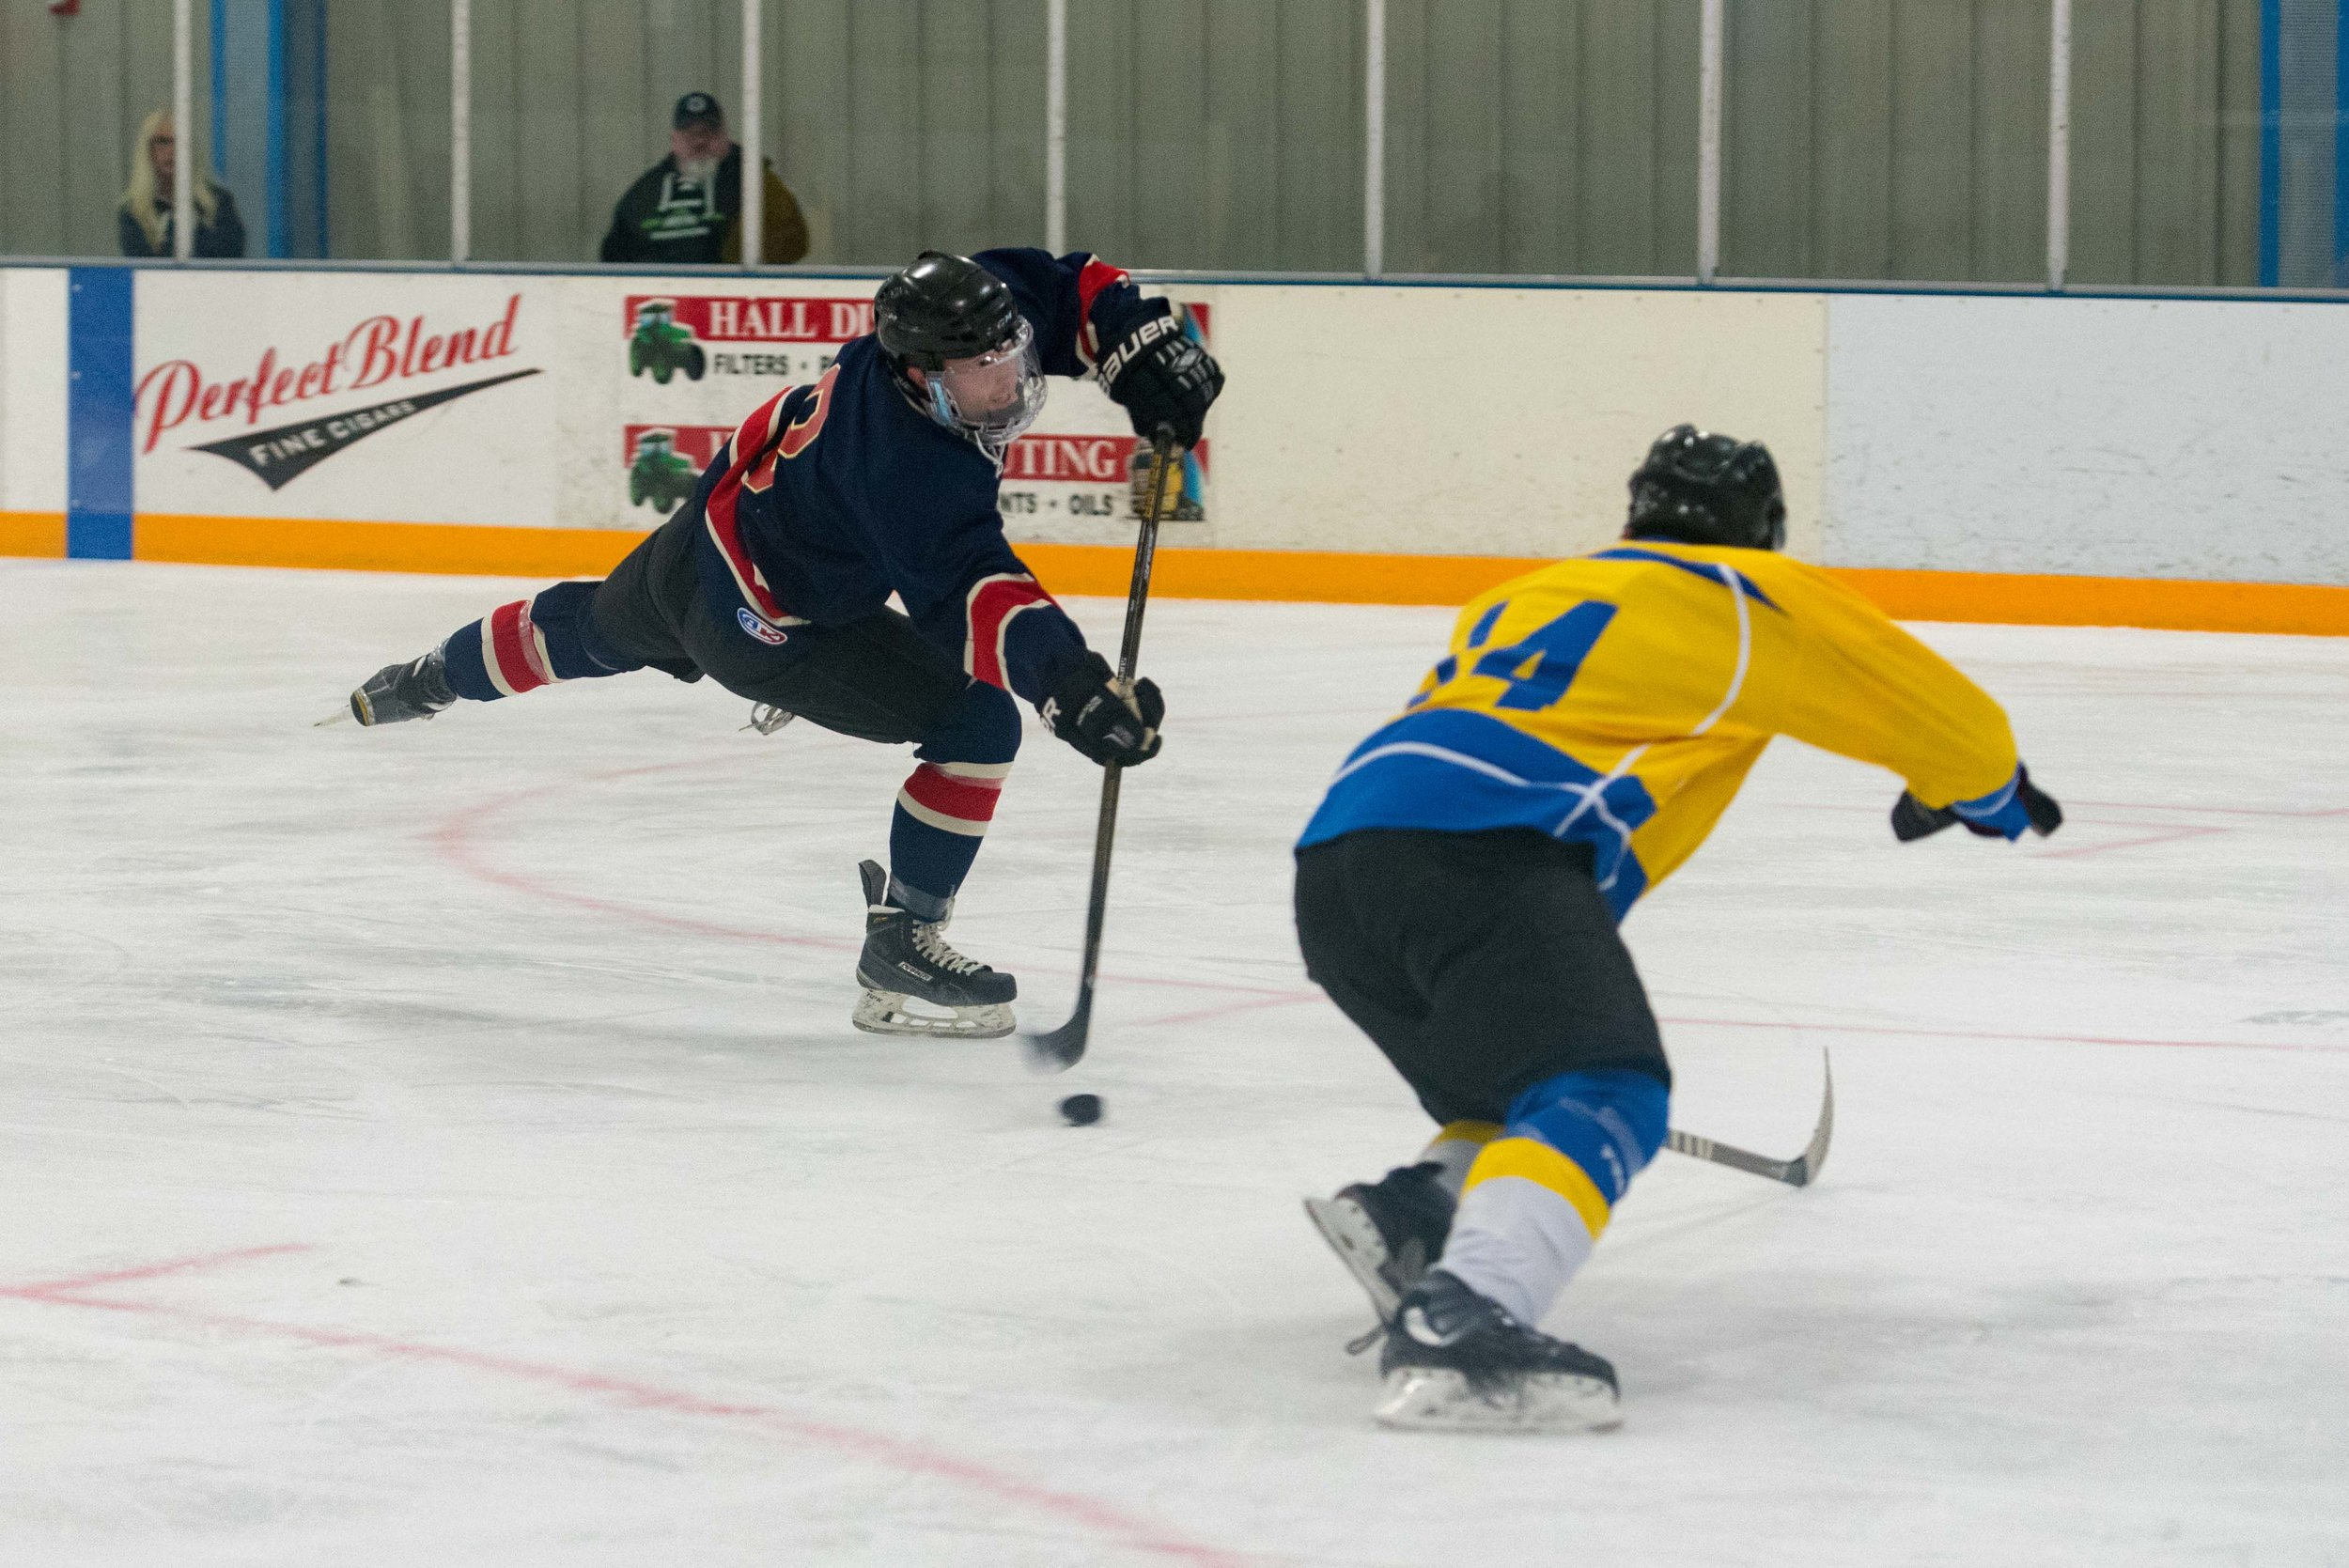 Ice dogs v WC Seals 10-13-17-20.jpg